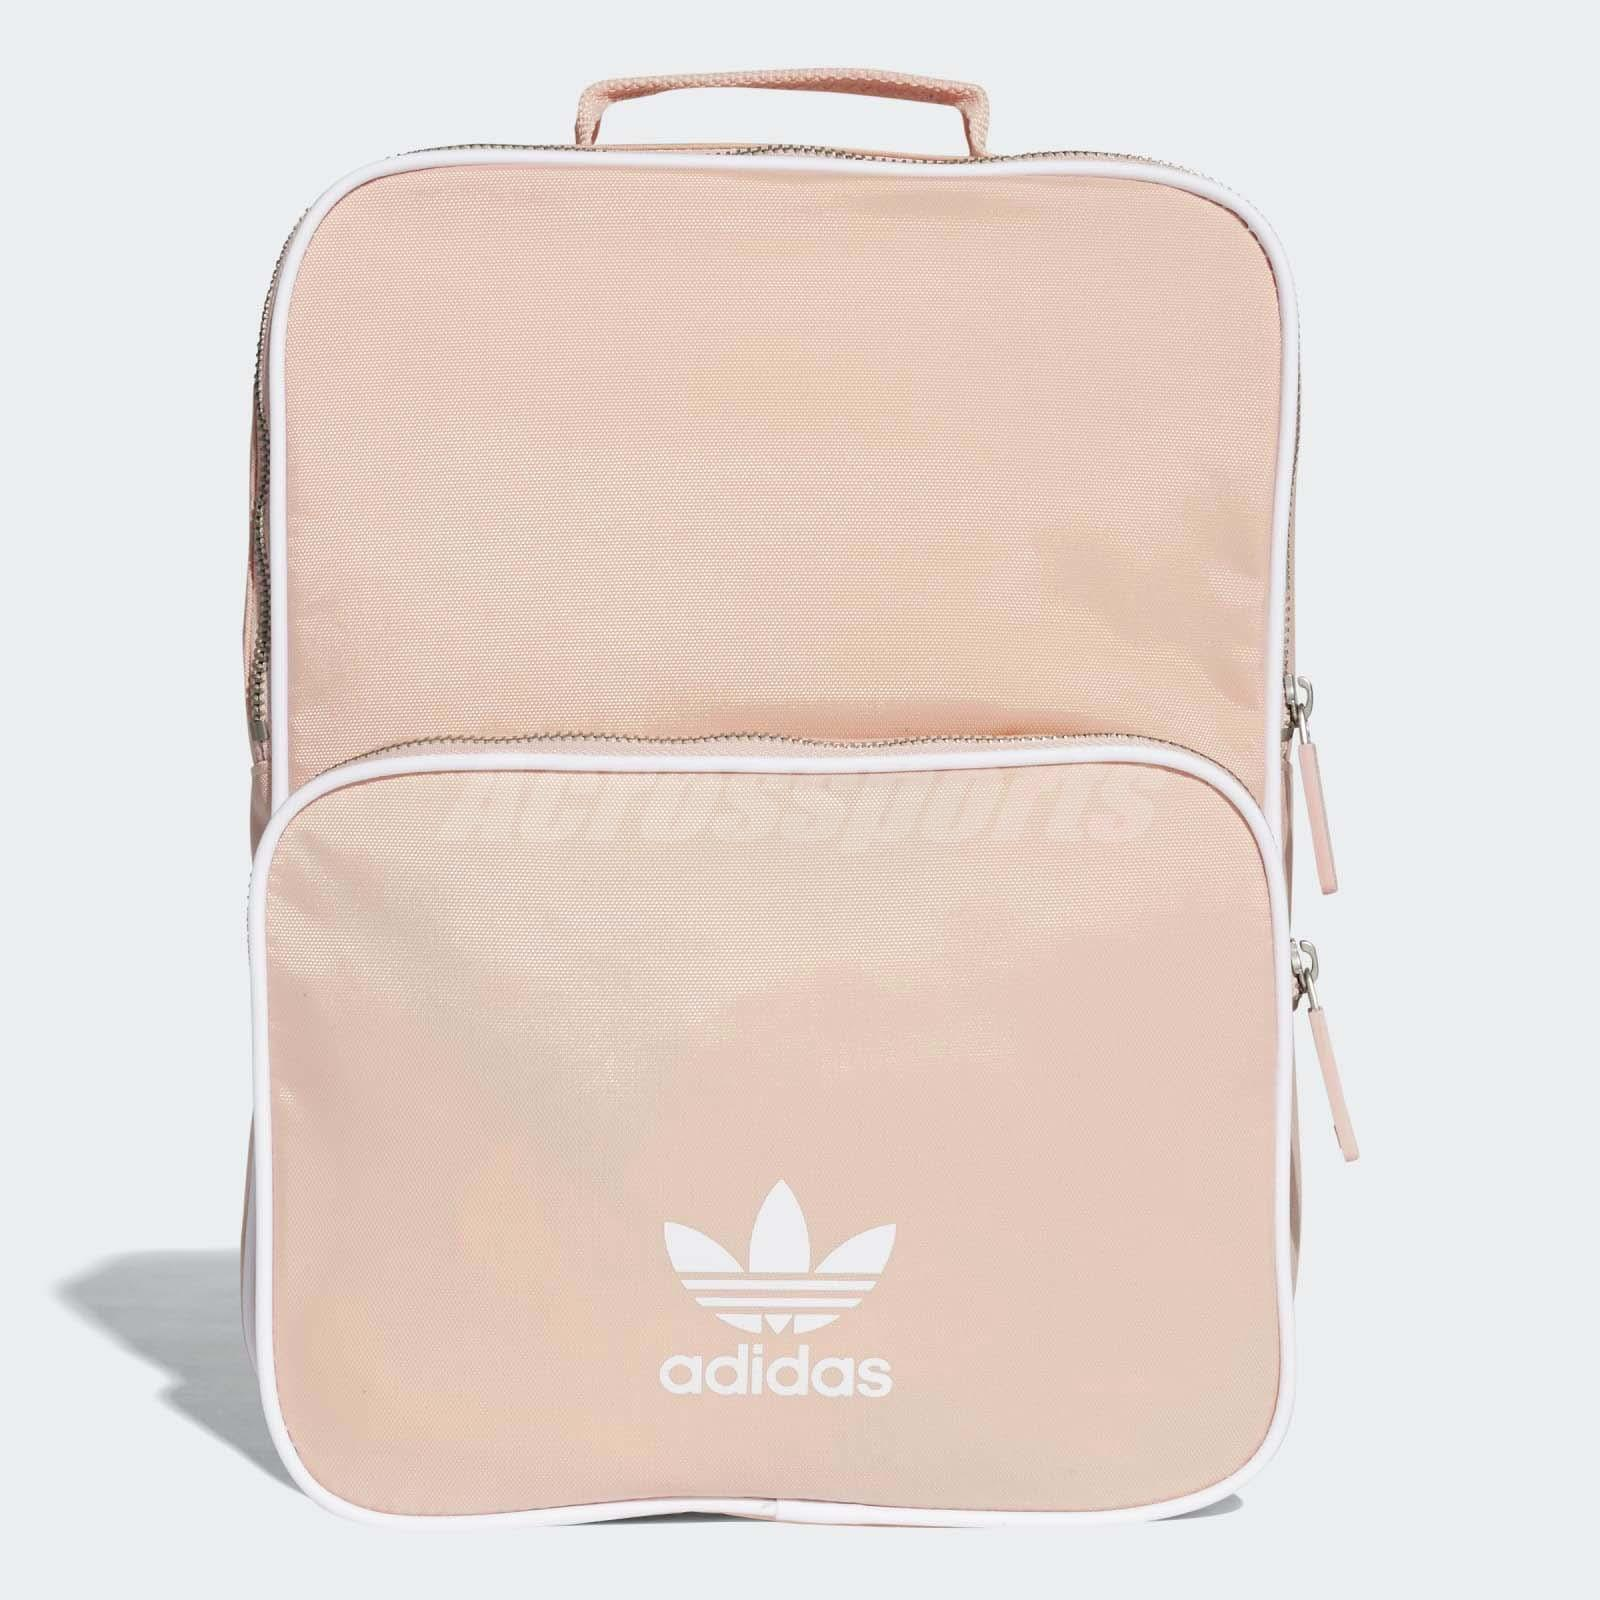 Details about adidas Originals Classic Backpack Pink White Trefoil Sports  Bag CW0621 b1a75471d1556